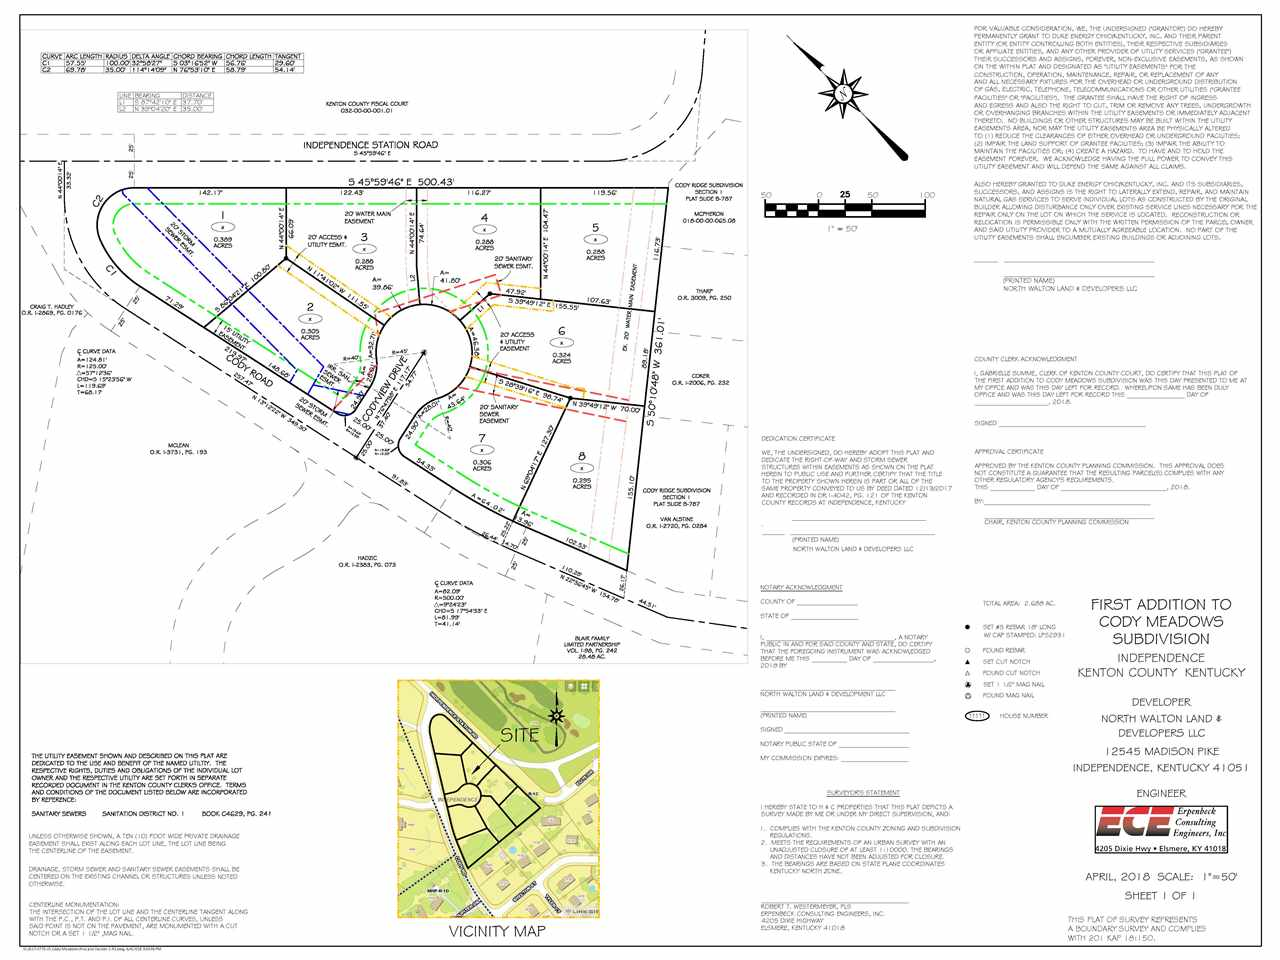 9827 Codyview Drive LOT 5 Independnc KY